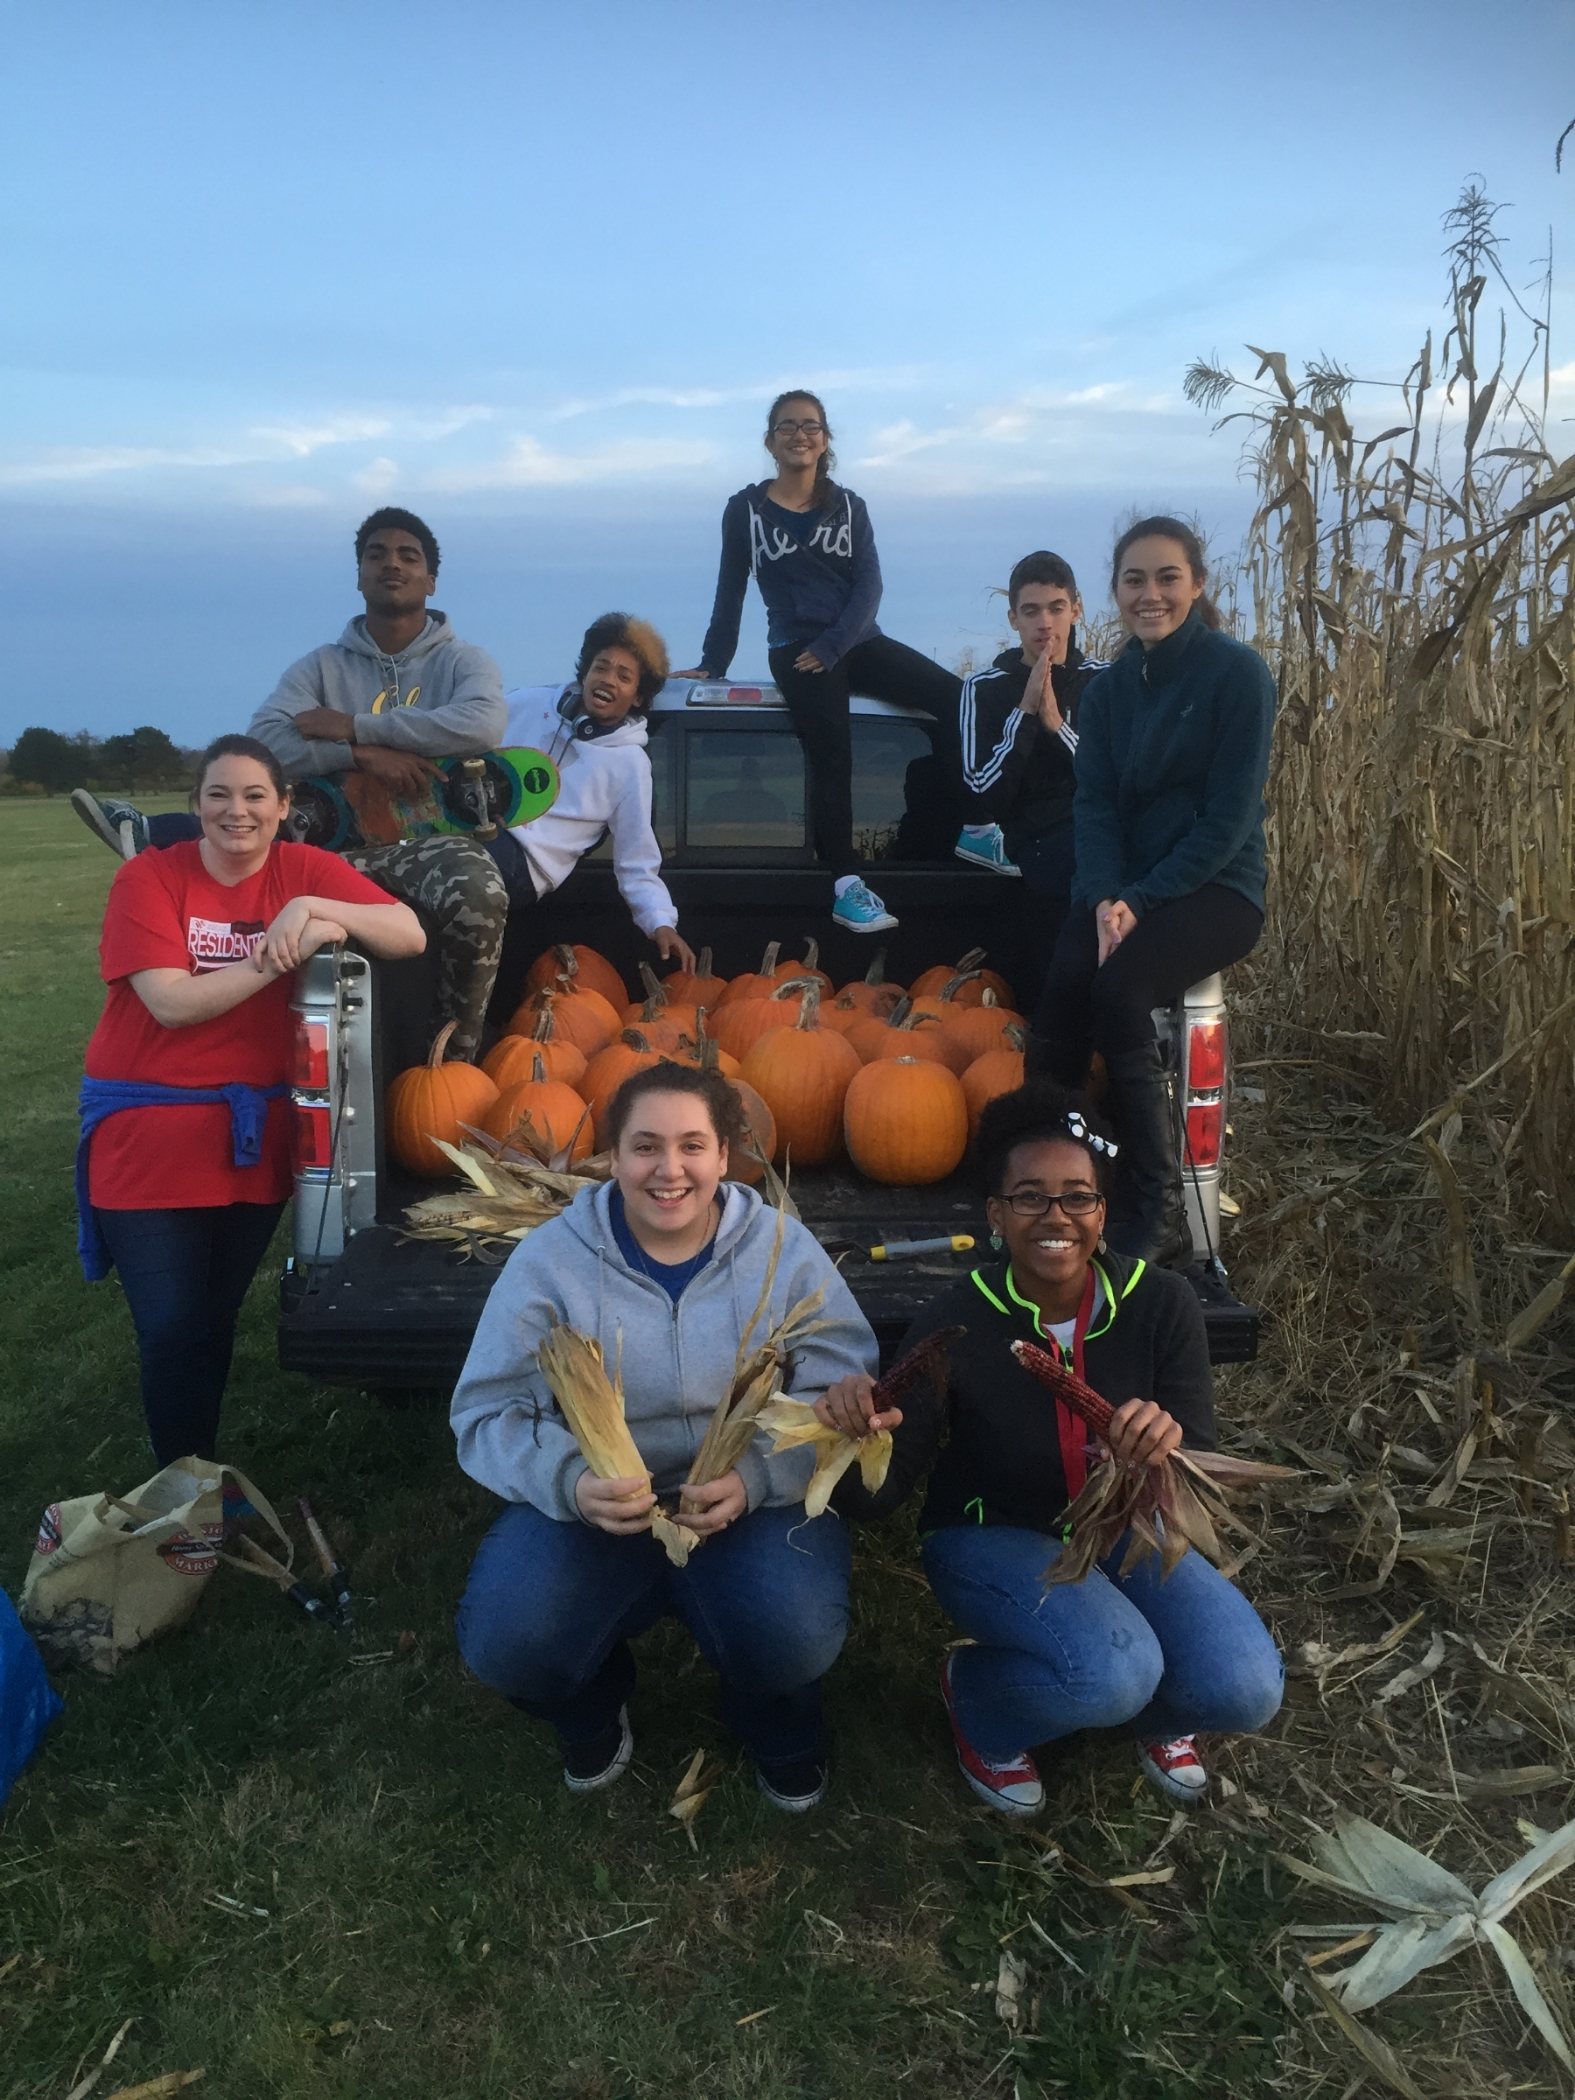 Christ United Methodist Youth Group bringing in the 2015 Fall season at the pumpkin patch.